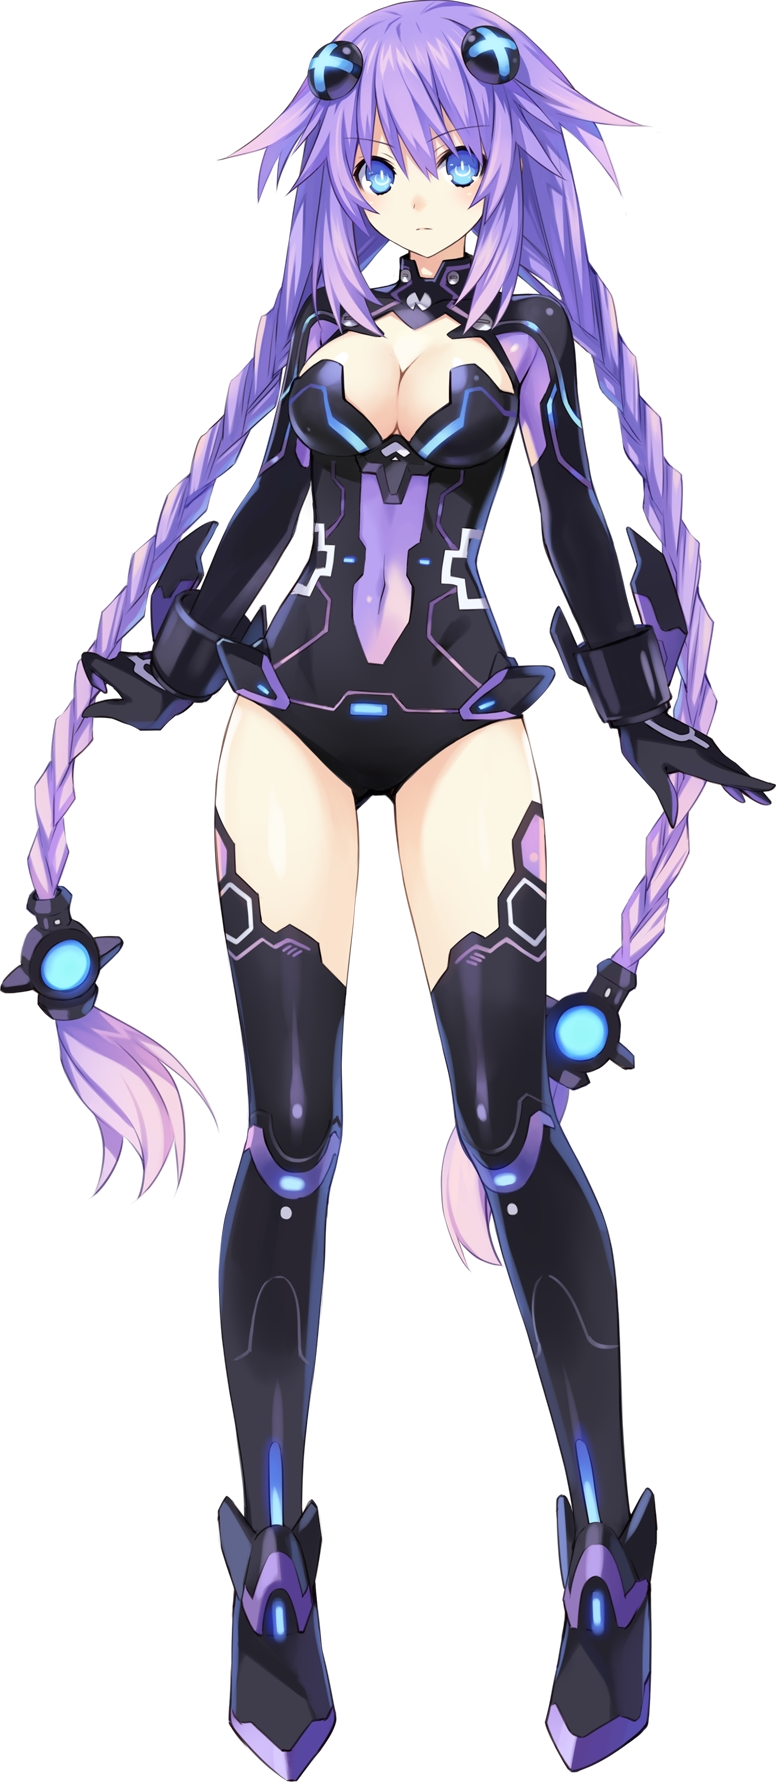 Neptune game png. Image hdd hyperdimension neptunia